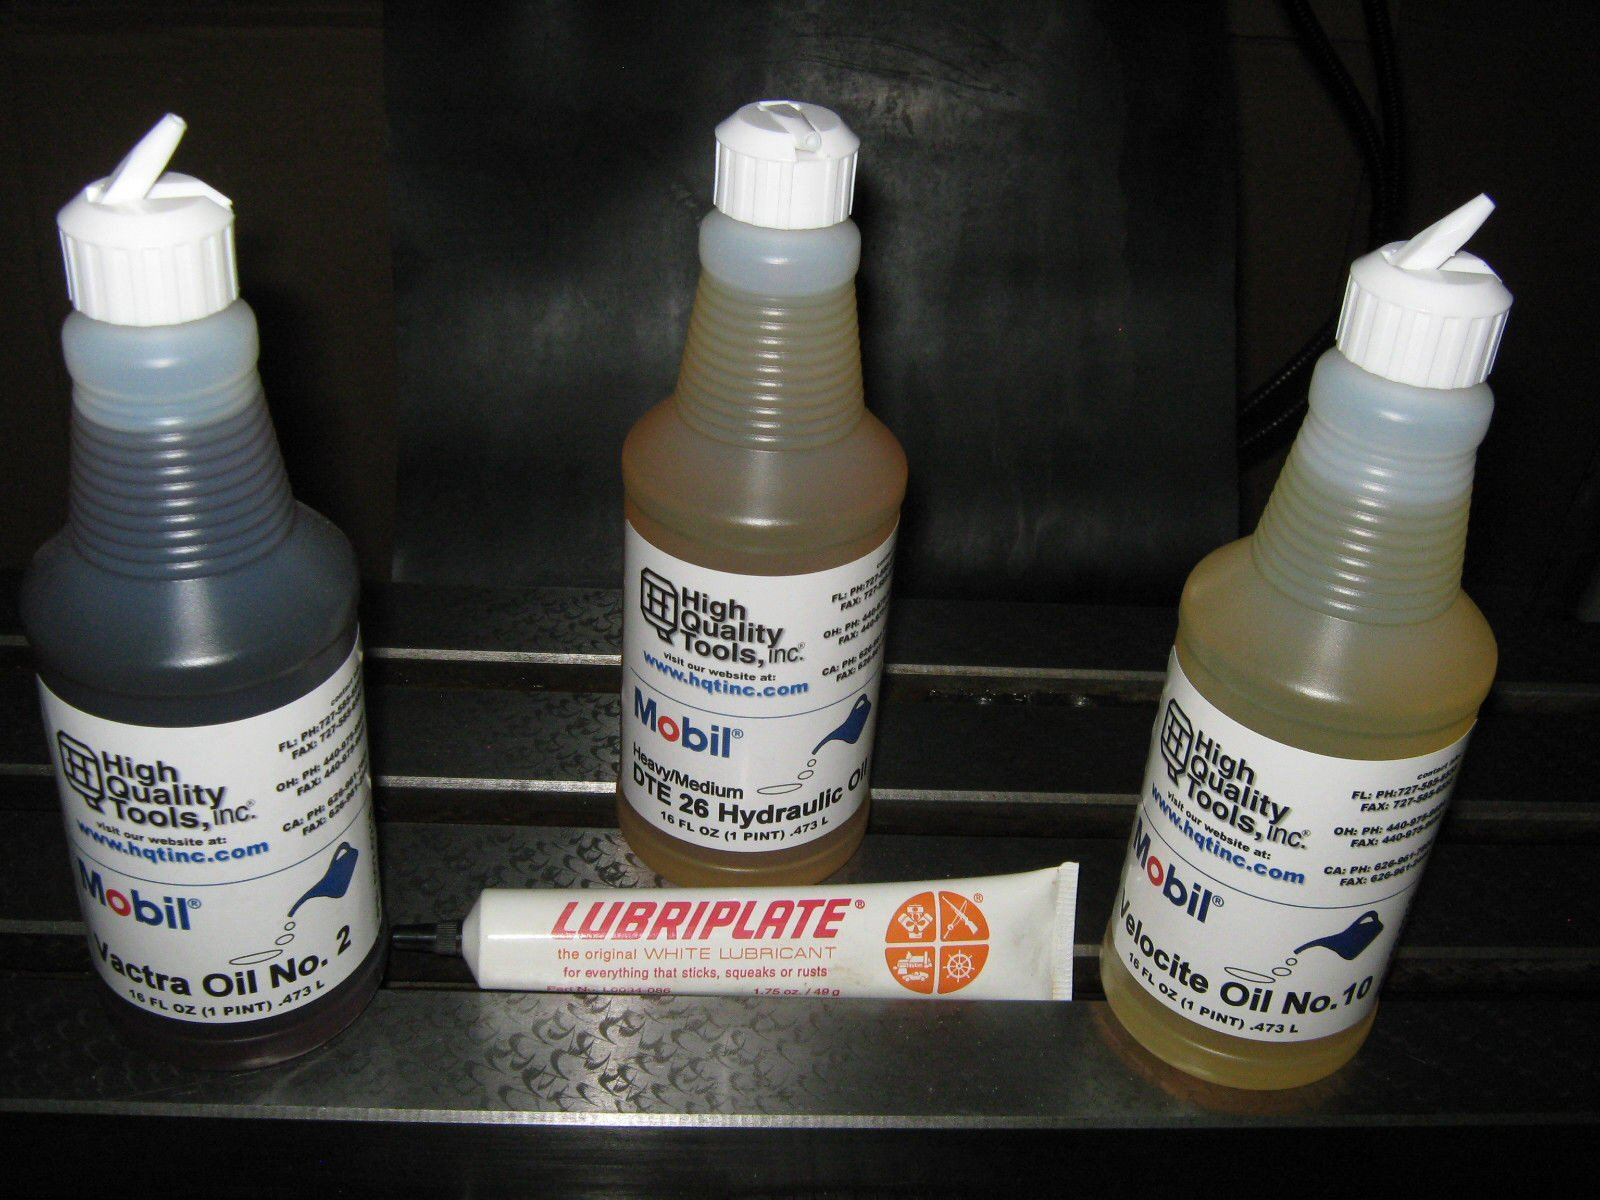 LUBRICATION MAINTENANCE KIT FOR MILLING MACHINE (EXPEDITED DELIVERY NOT AVAILABLE) by High Quality Tools